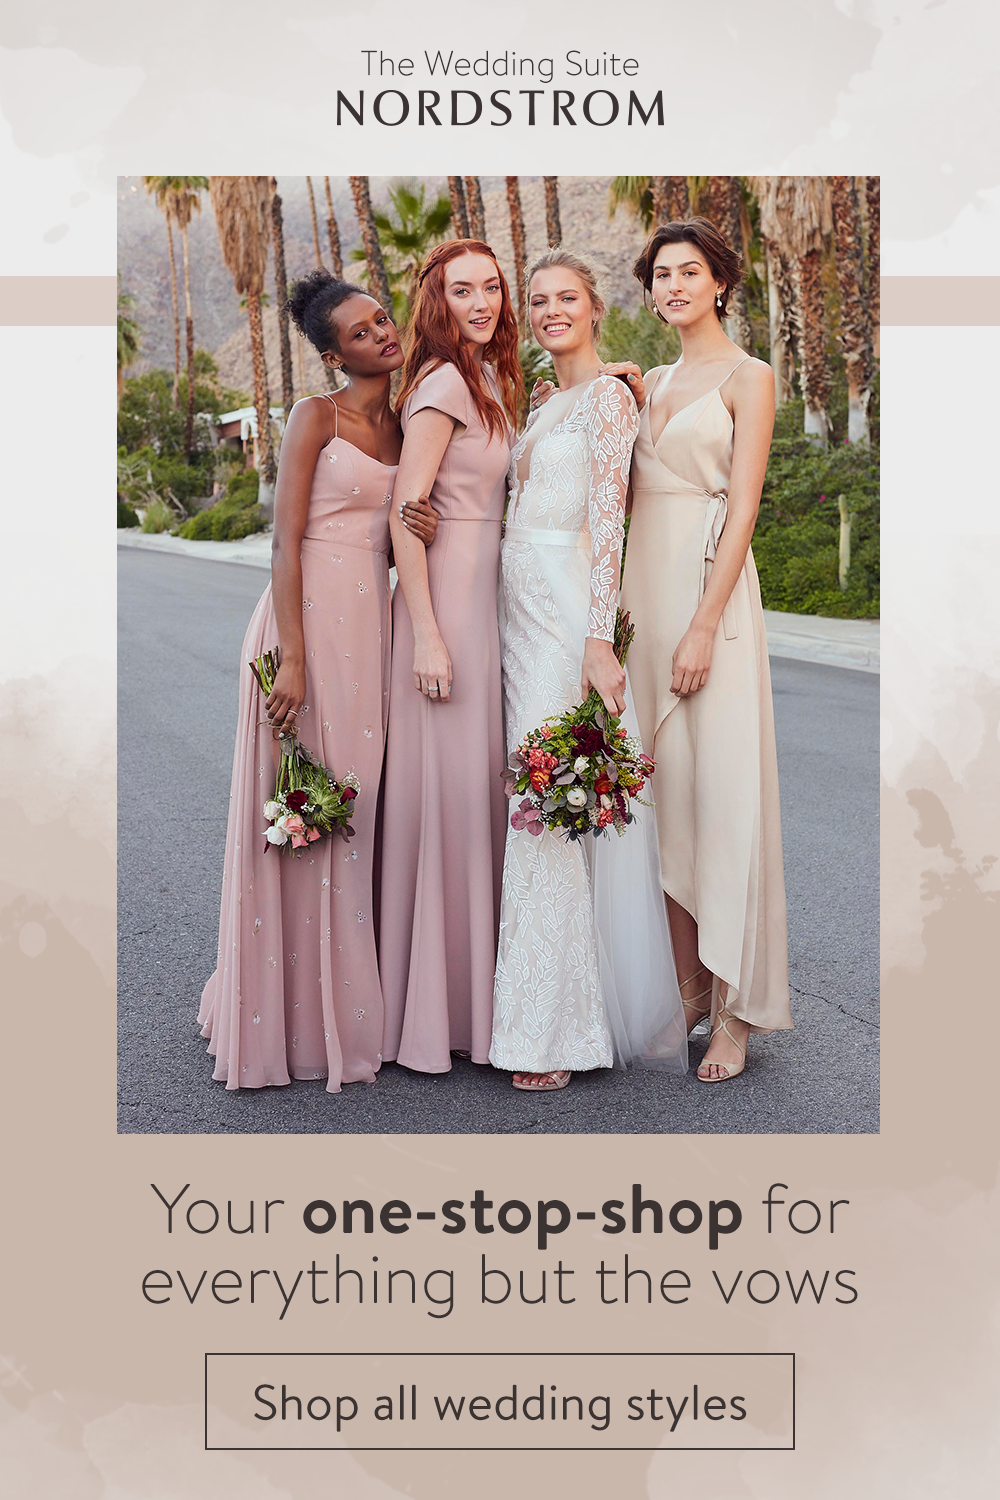 The Wedding Suite At Nordstrom Is Your One Stop Wedding Shop For Everything But The Vows Browse Wedding Gown Wedding Dresses Wedding Gowns Wedding Bridesmaids